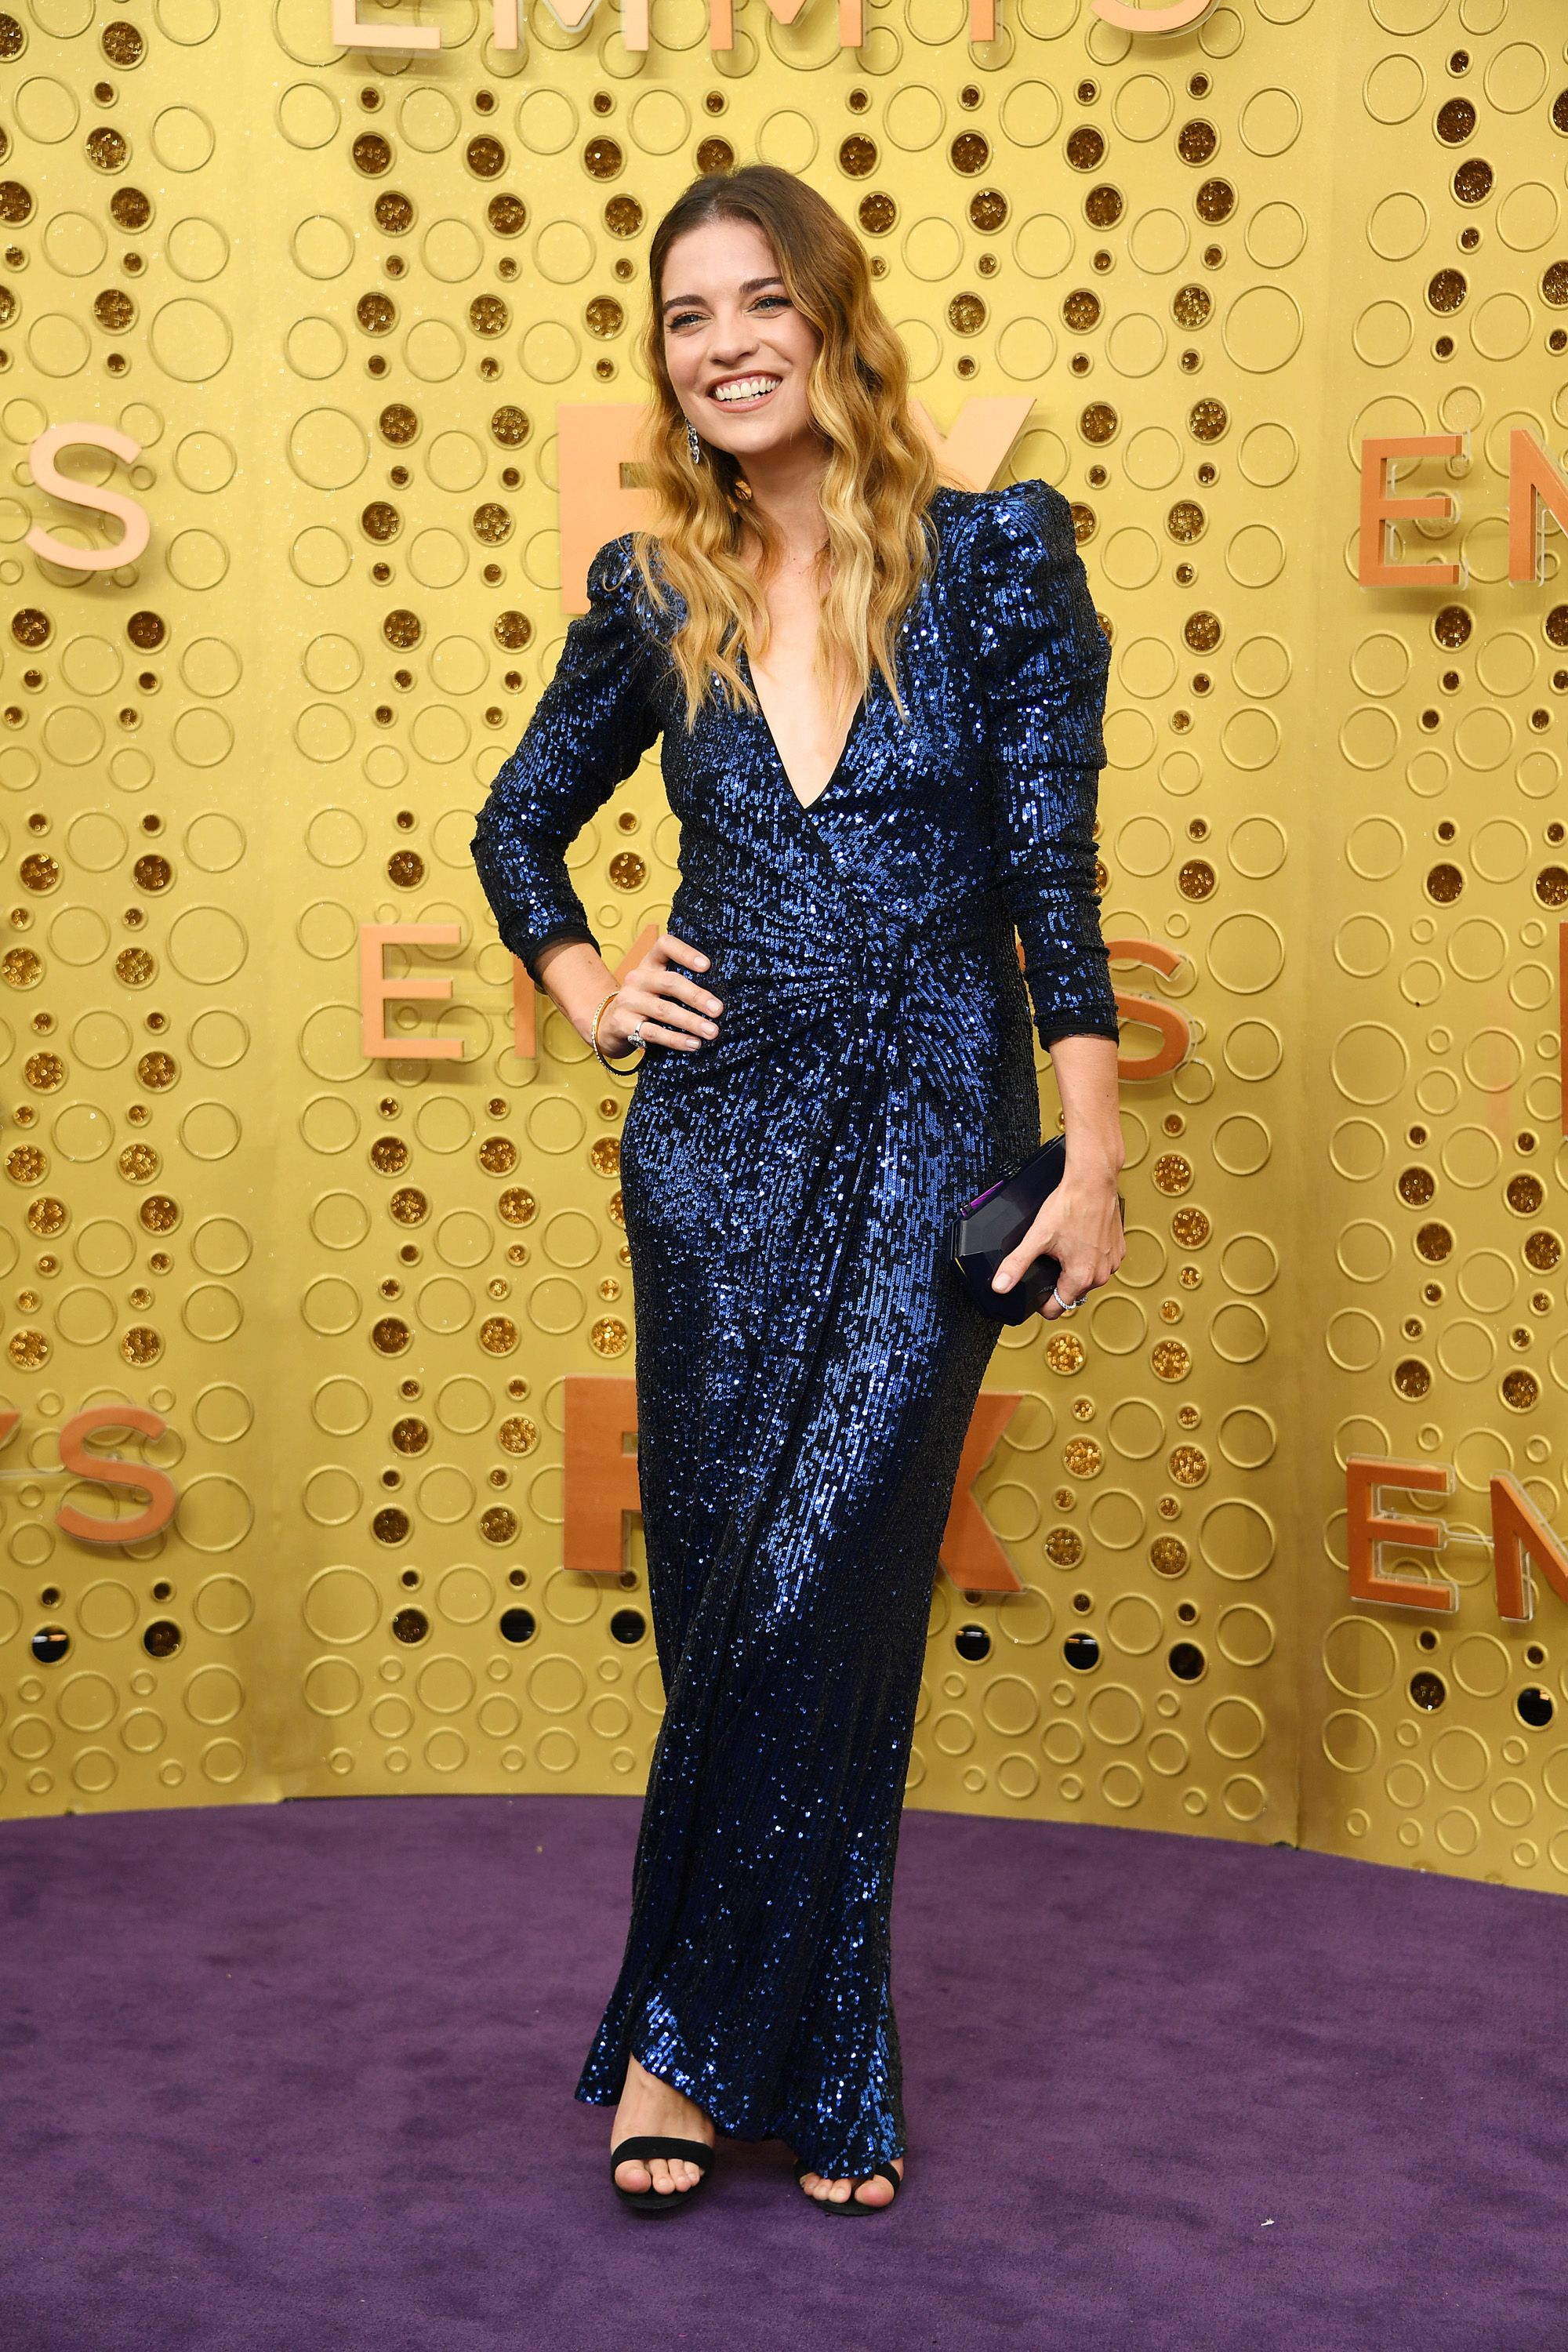 Blake Lively Posts a Throwback of Her Emmys Appearance with Leighton Meester